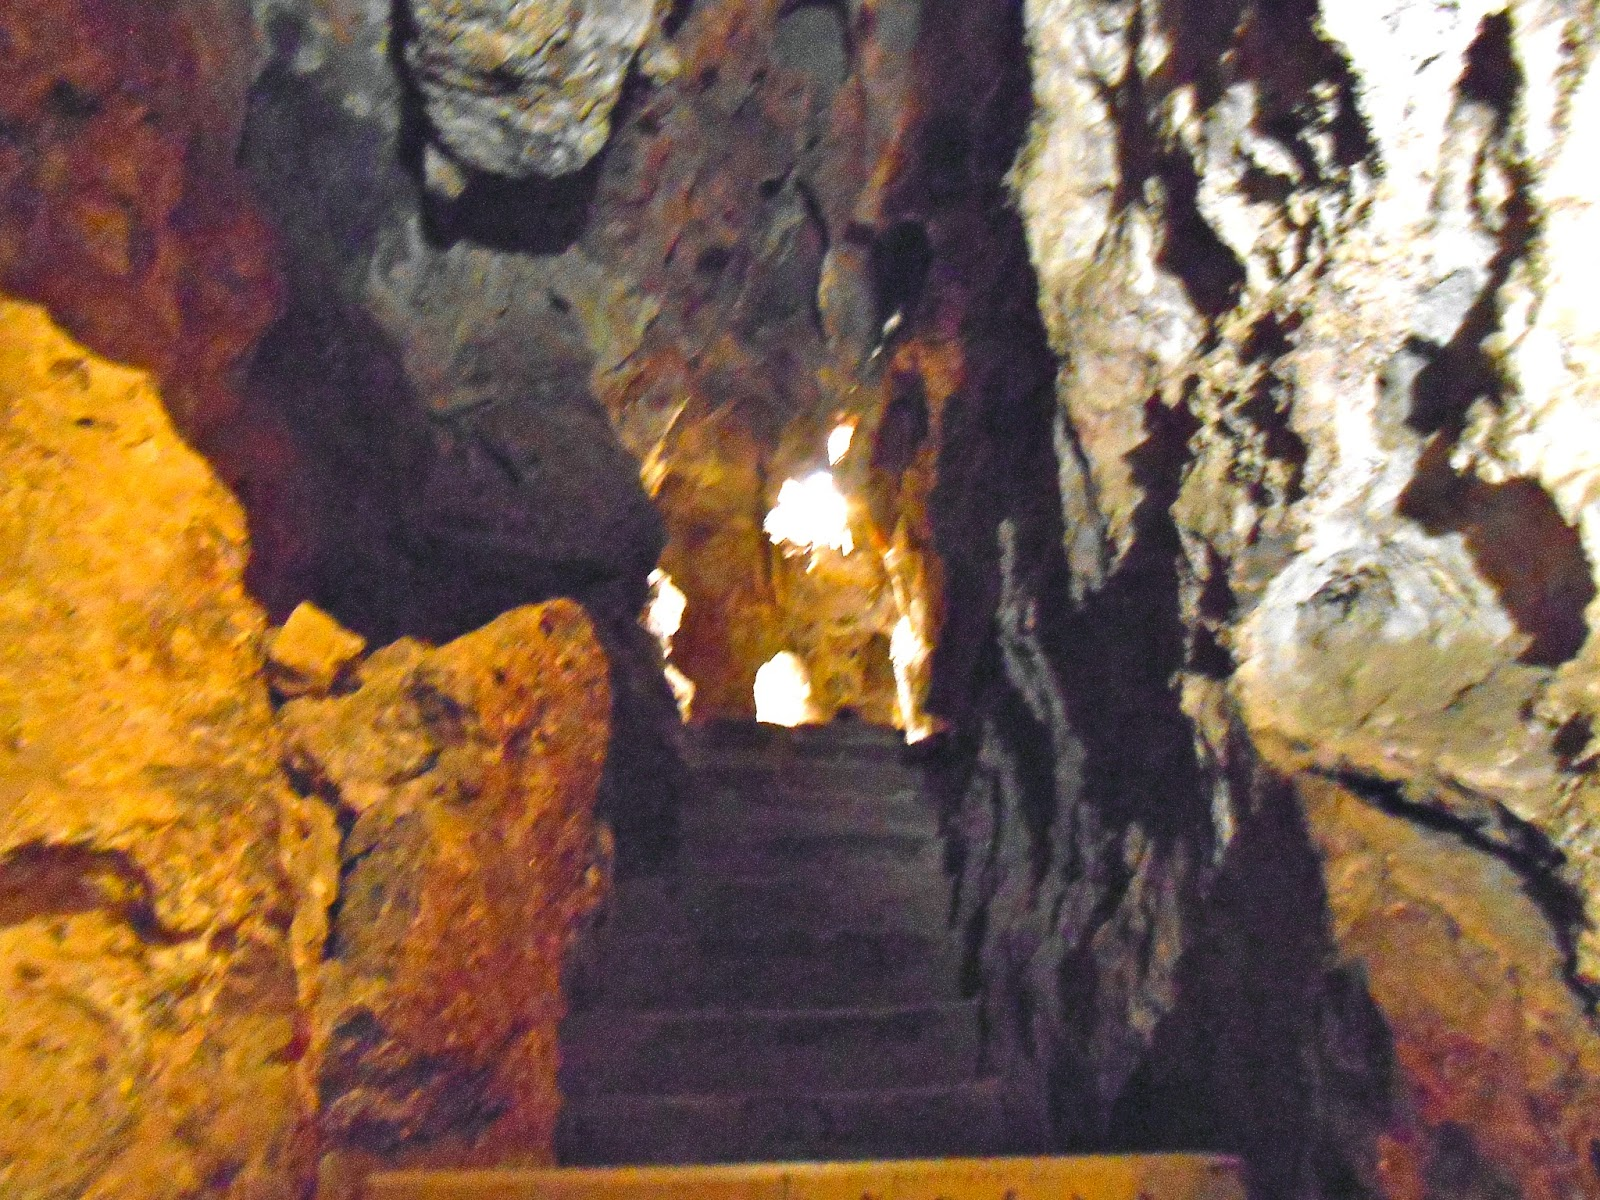 getting married in colossal cave tucson arizona